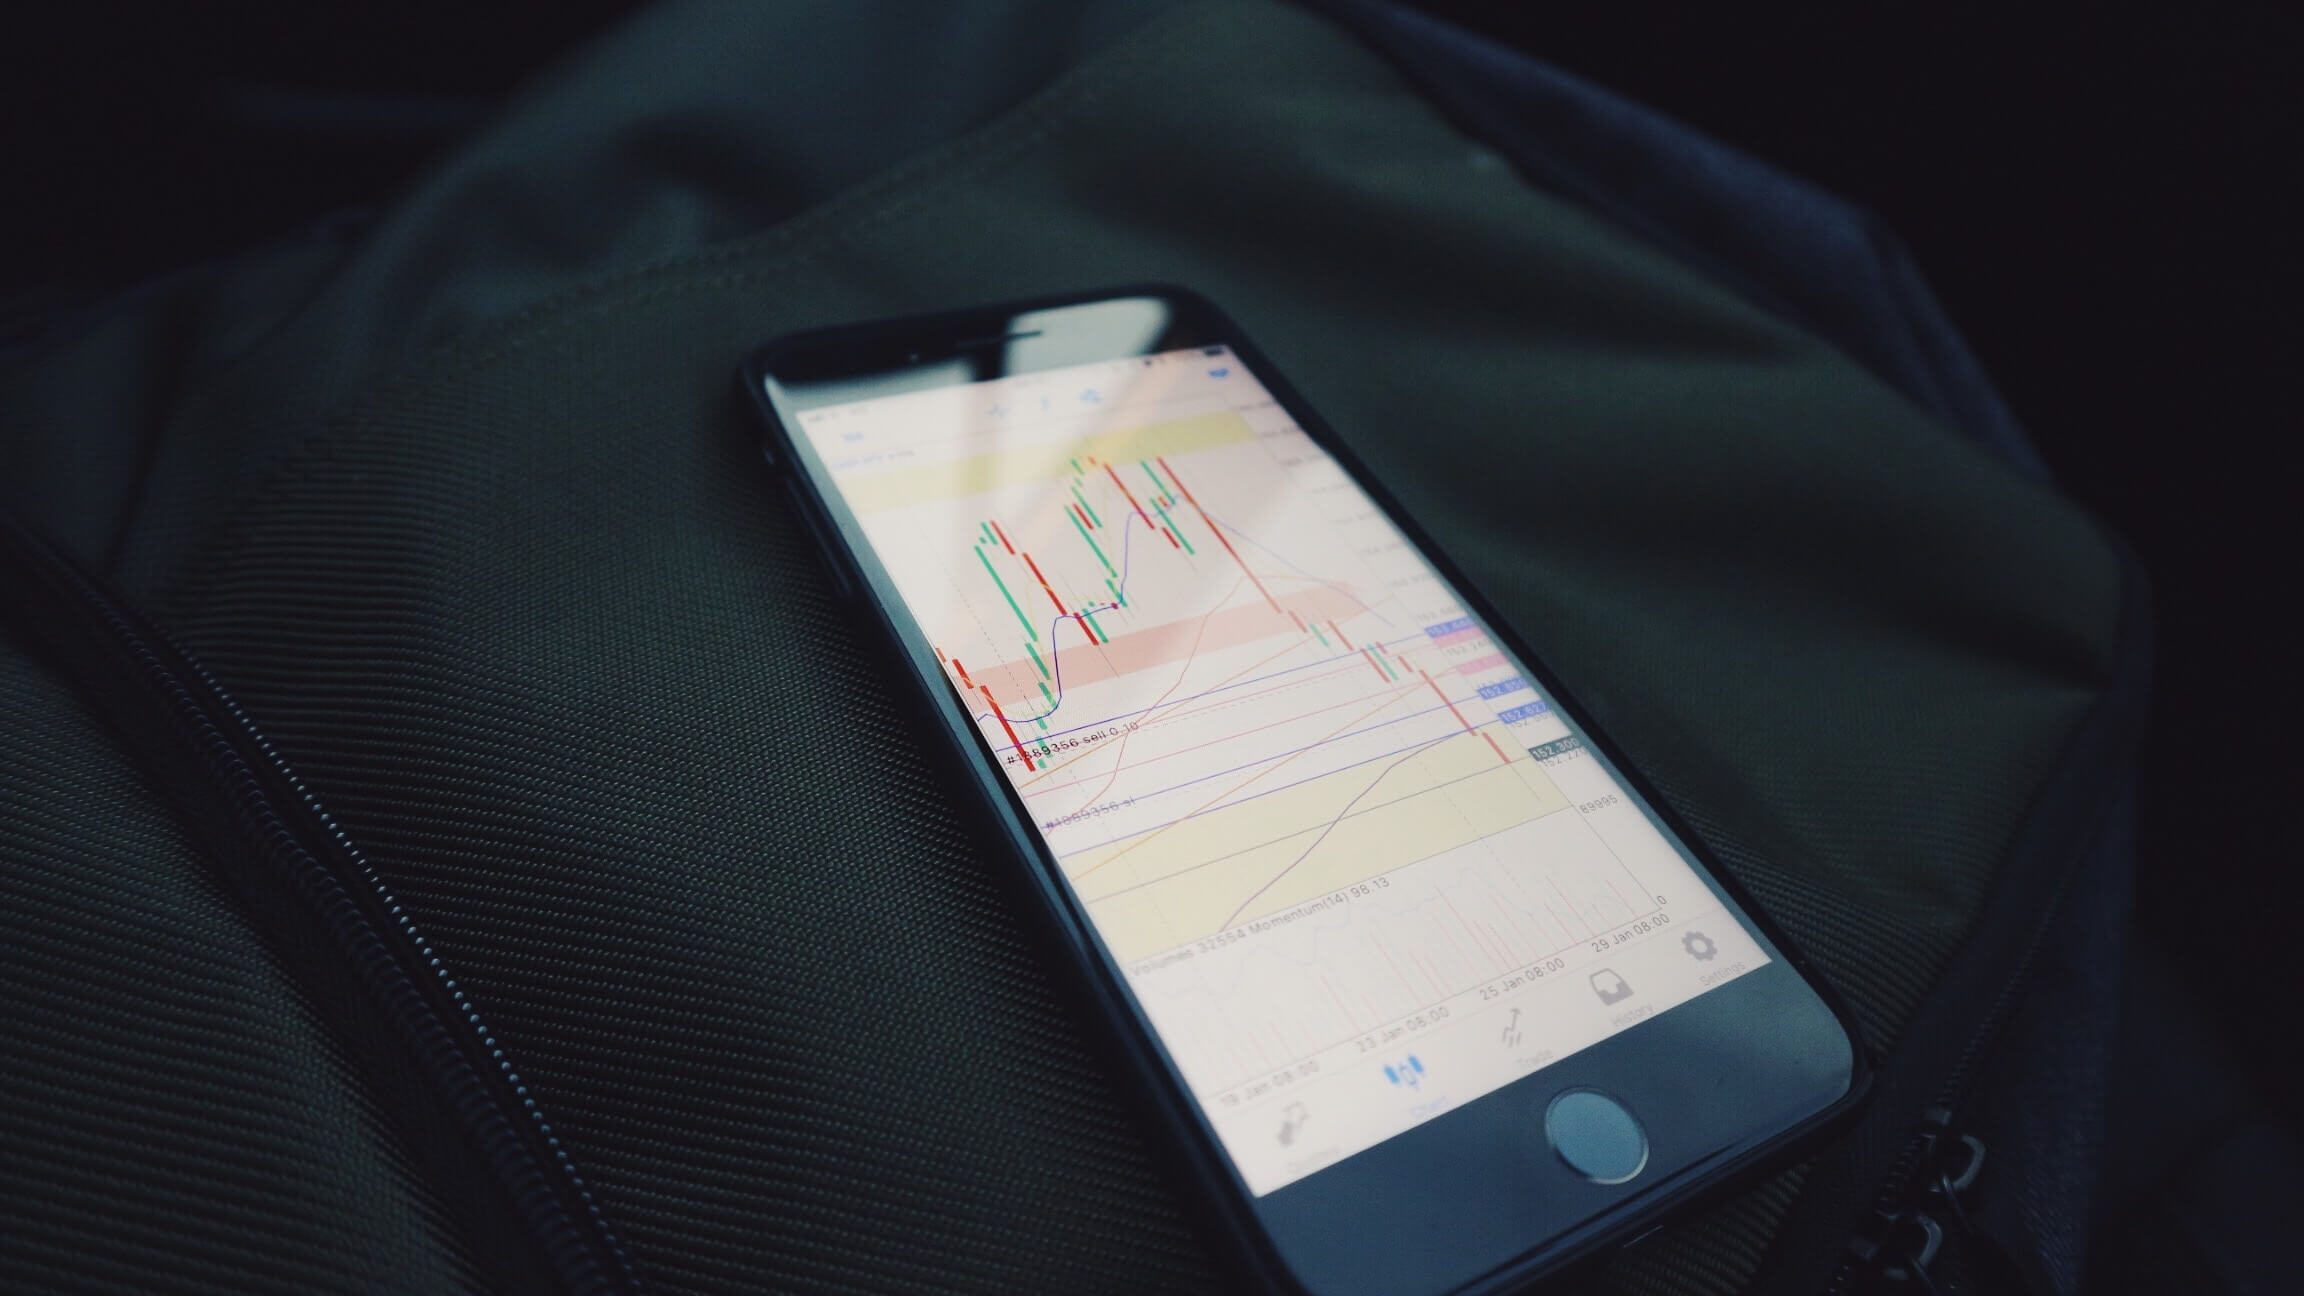 lawtrades founder equity stocks app